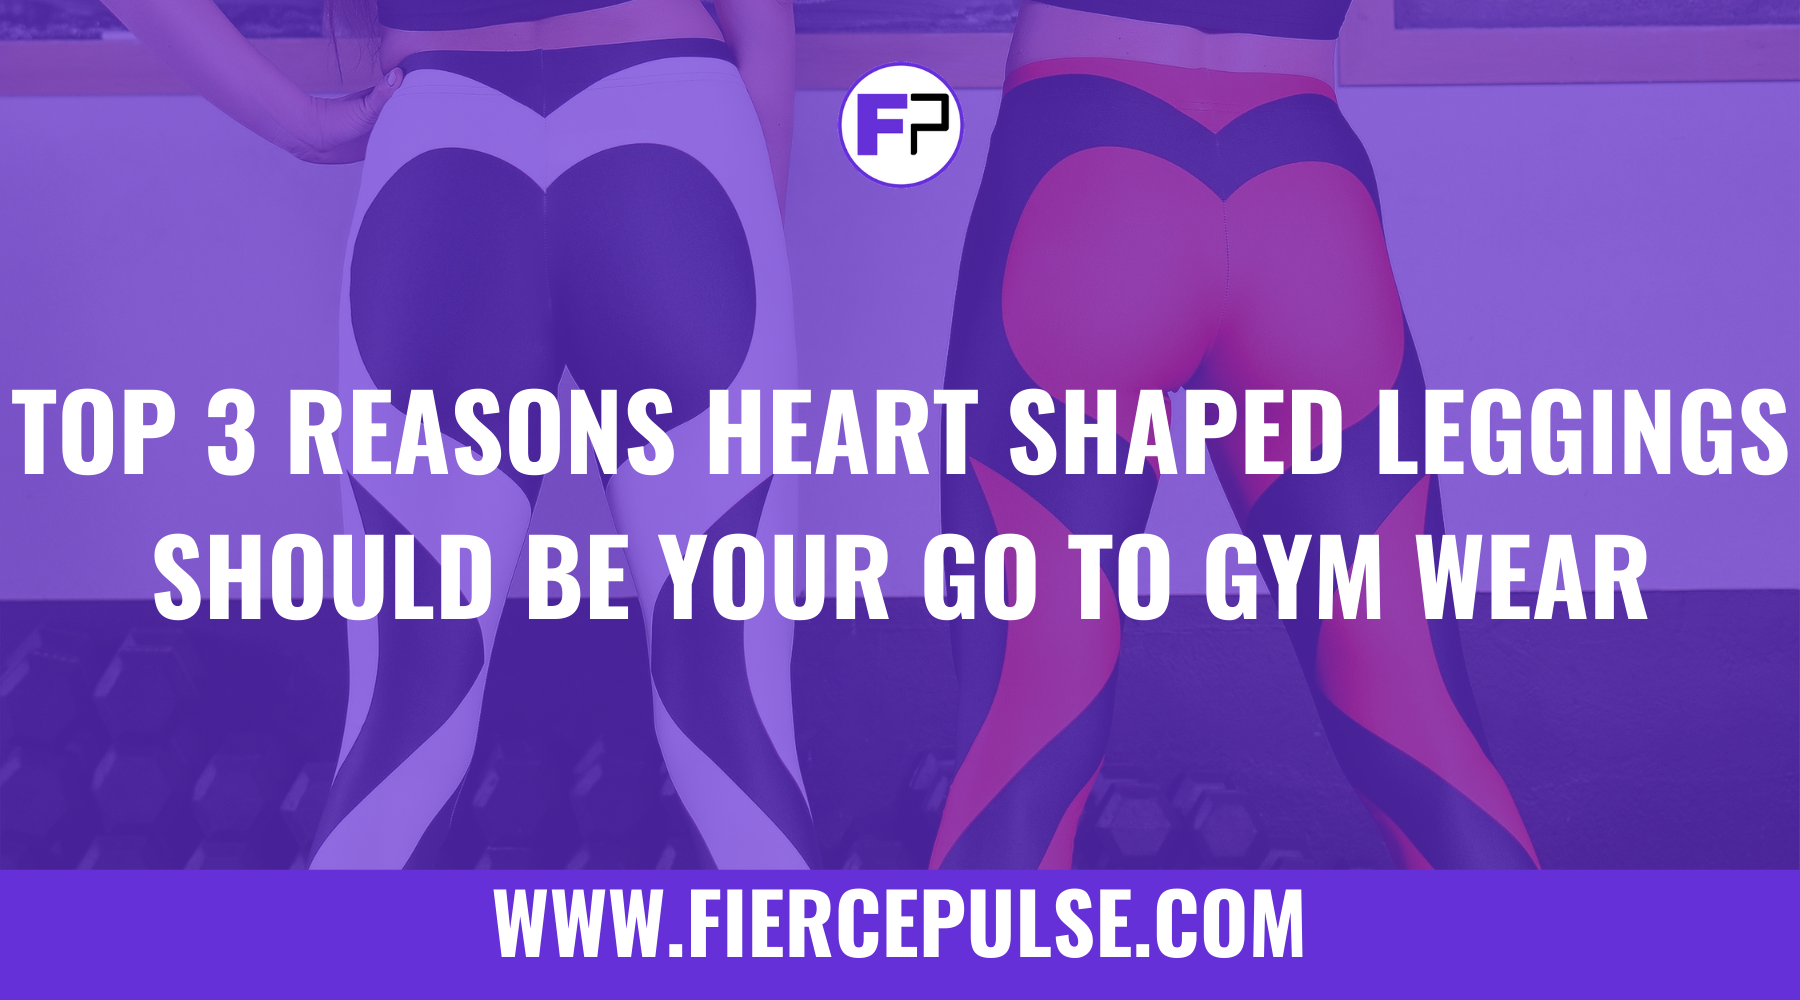 Top 3 Reasons Heart Shaped Leggings Should Be Your Go To Gym Wear